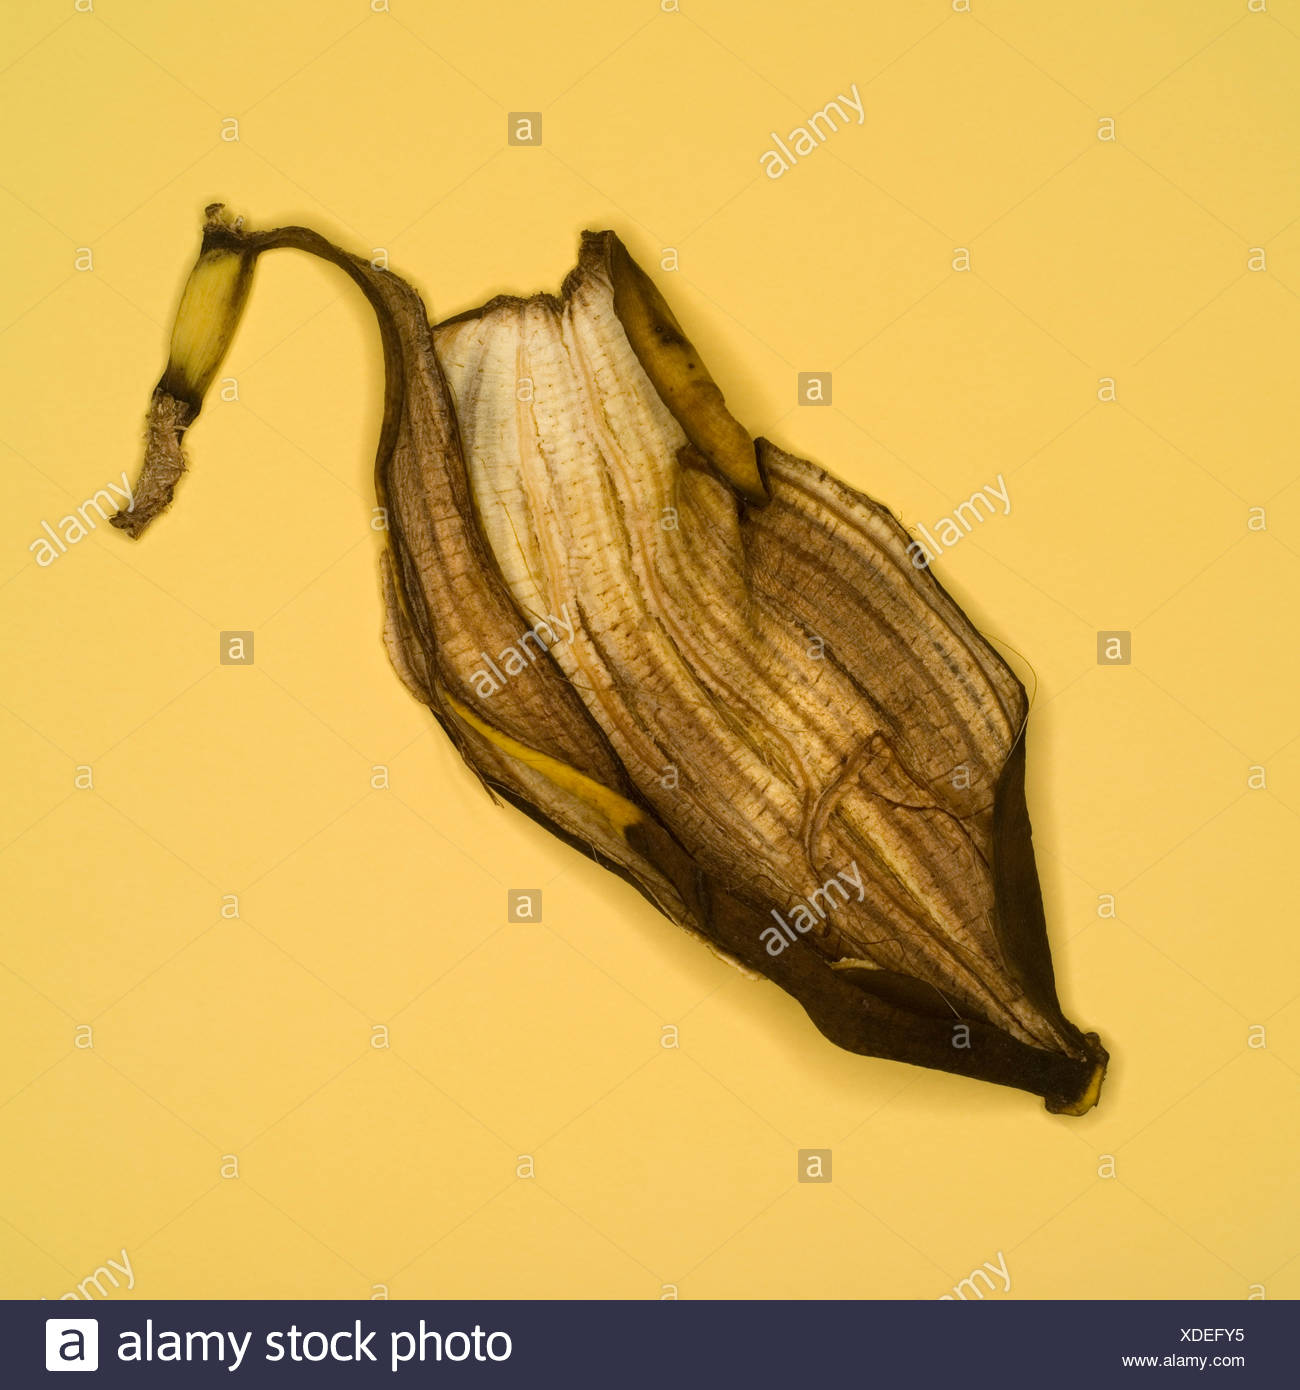 Rotting banana skin, elevated view - Stock Image